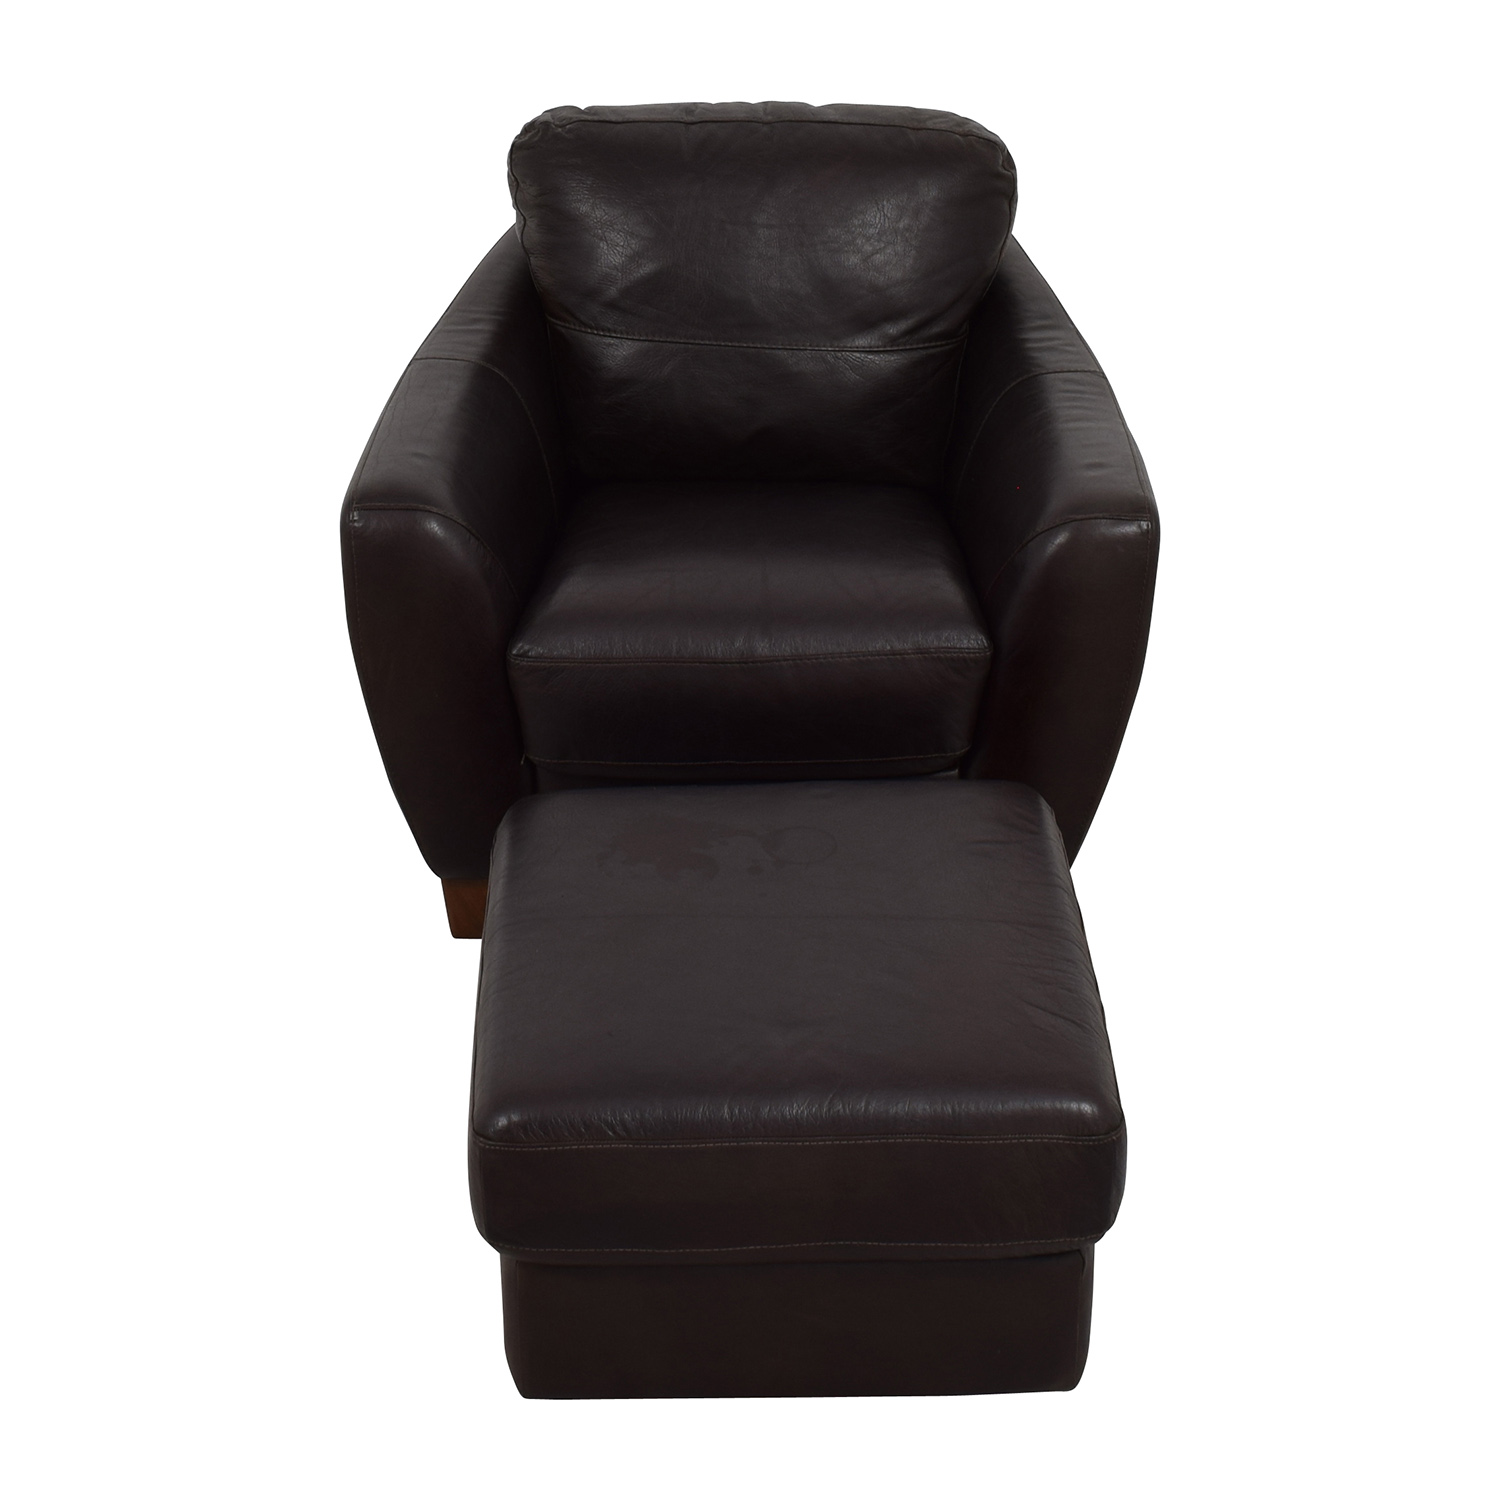 Sofitalia Dark Brown Leather Armchair and Ottoman sale